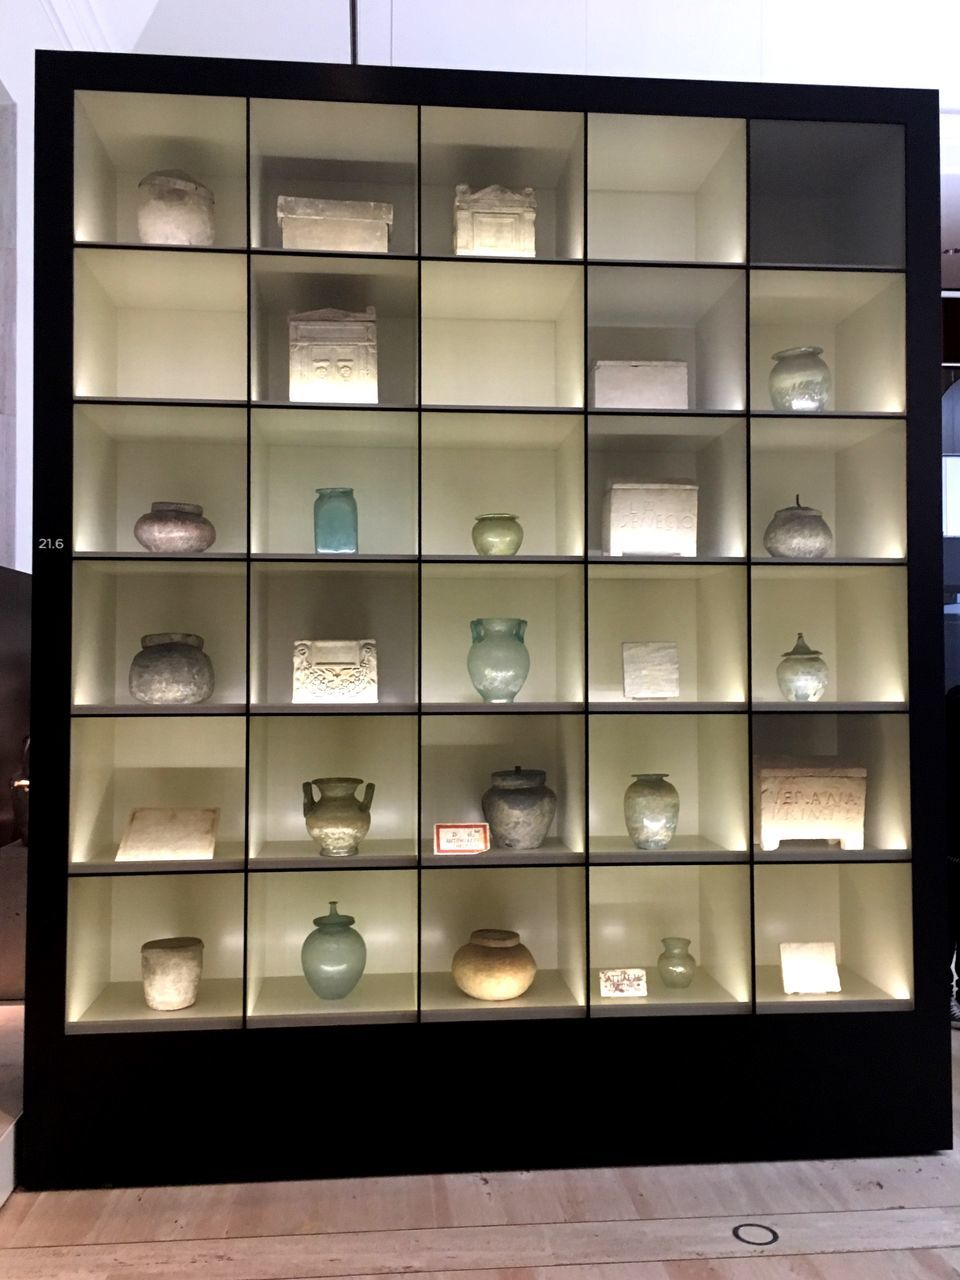 indoors, no people, large group of objects, illuminated, shelf, modern, choice, variation, container, retail, architecture, multi colored, wealth, in a row, glass - material, collection, transparent, arrangement, design, pattern, luxury